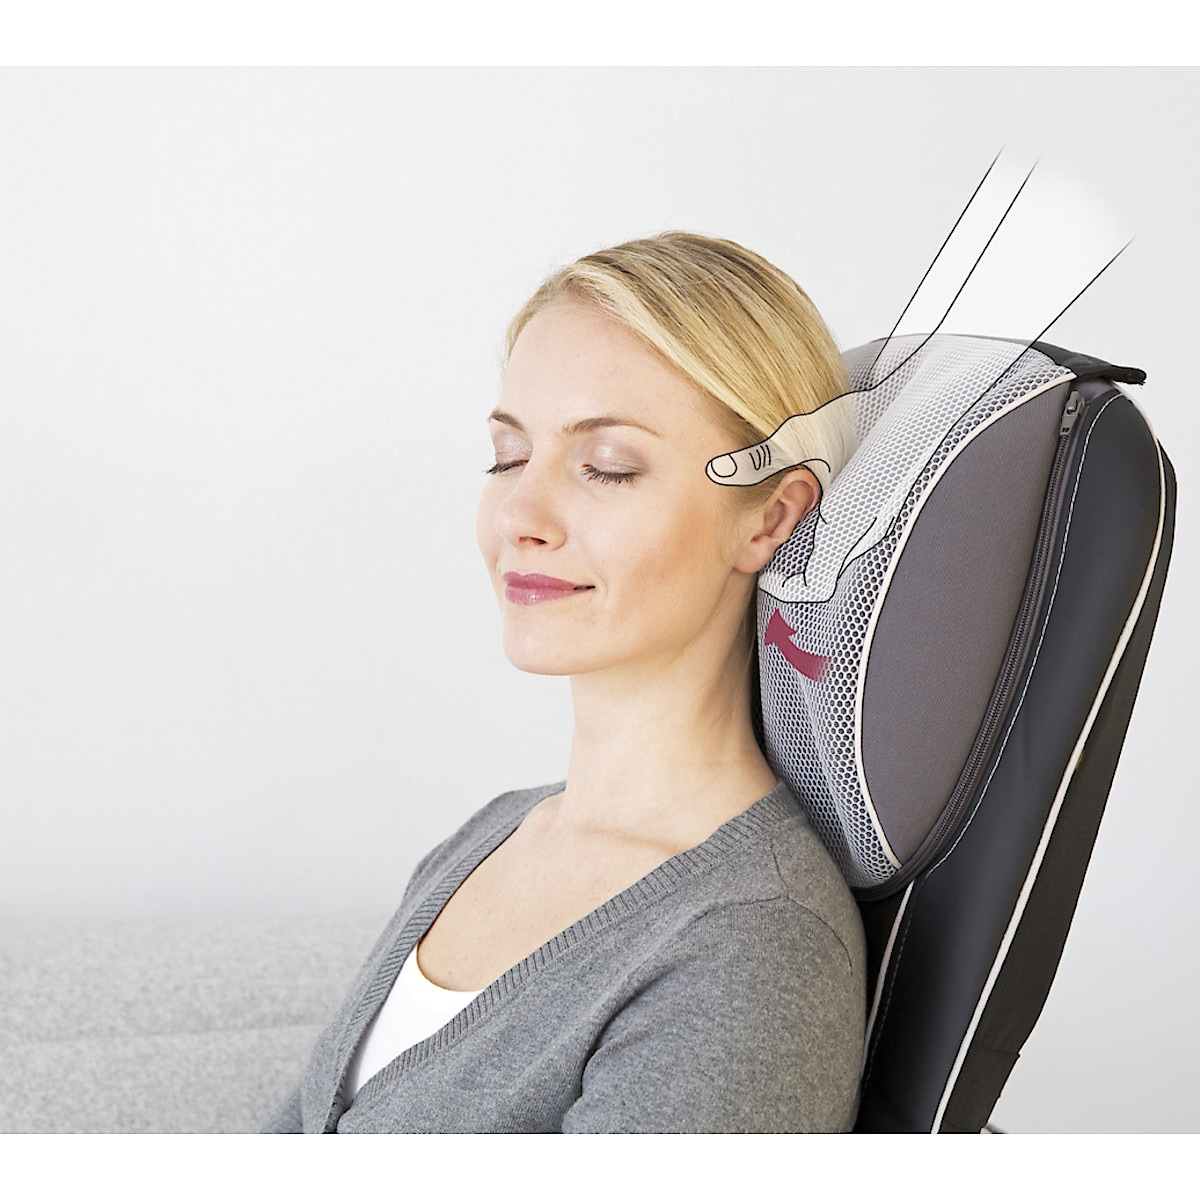 Massagesäte Shiatsu Beurer MG 295